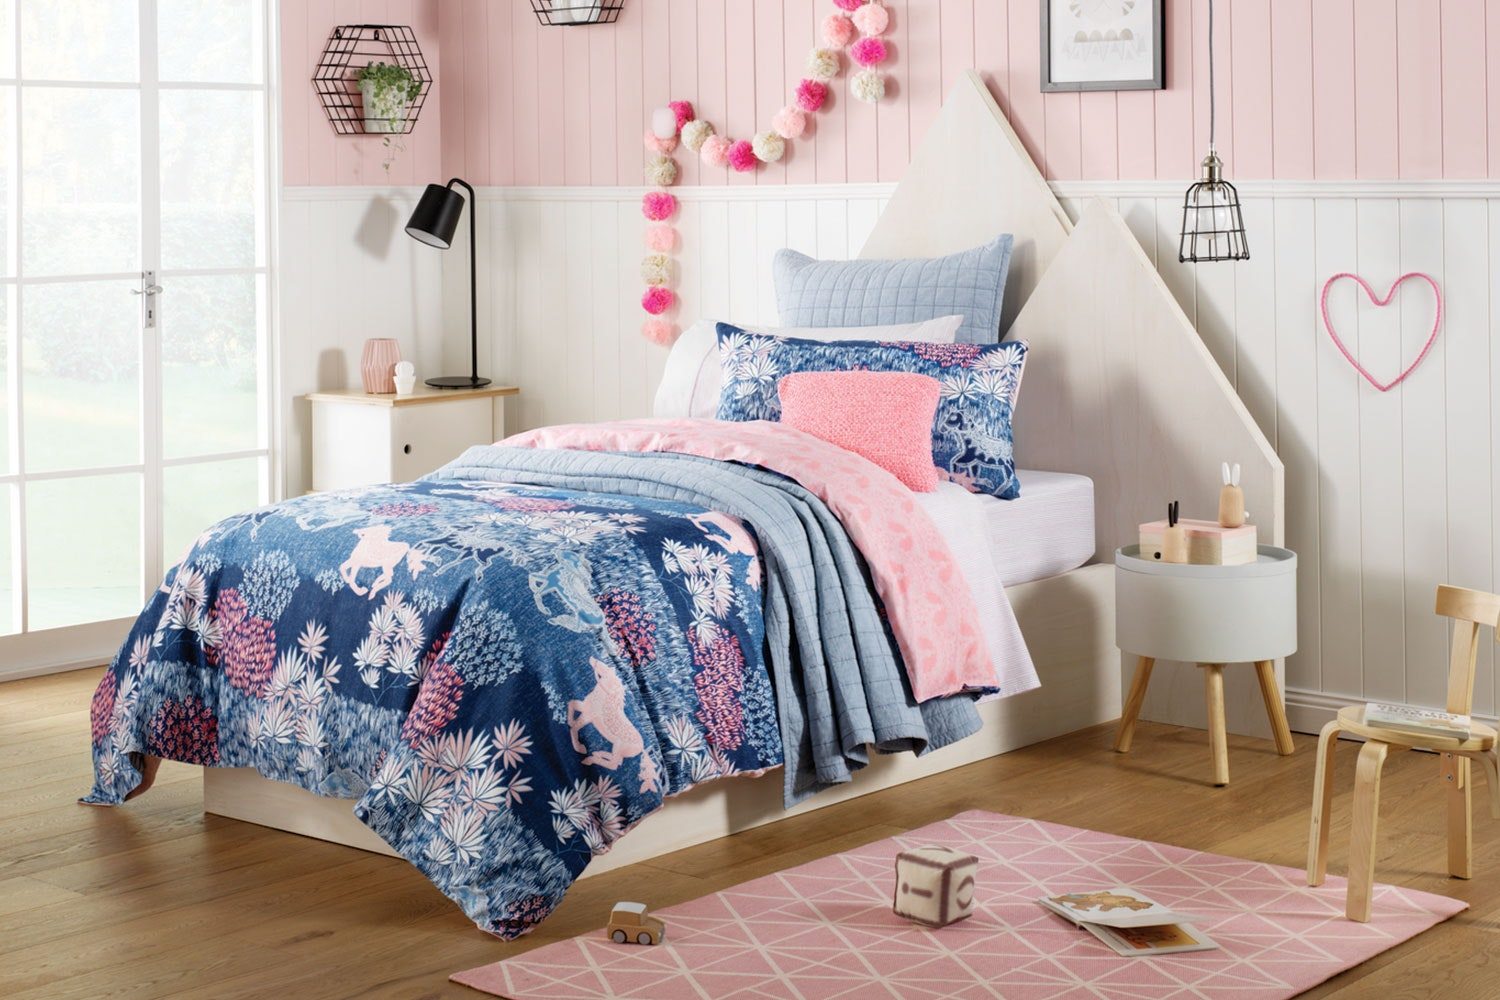 Kids Bedroom Harvey Norman kids bedroom — kids furniture, kids beds, kids duvet covers